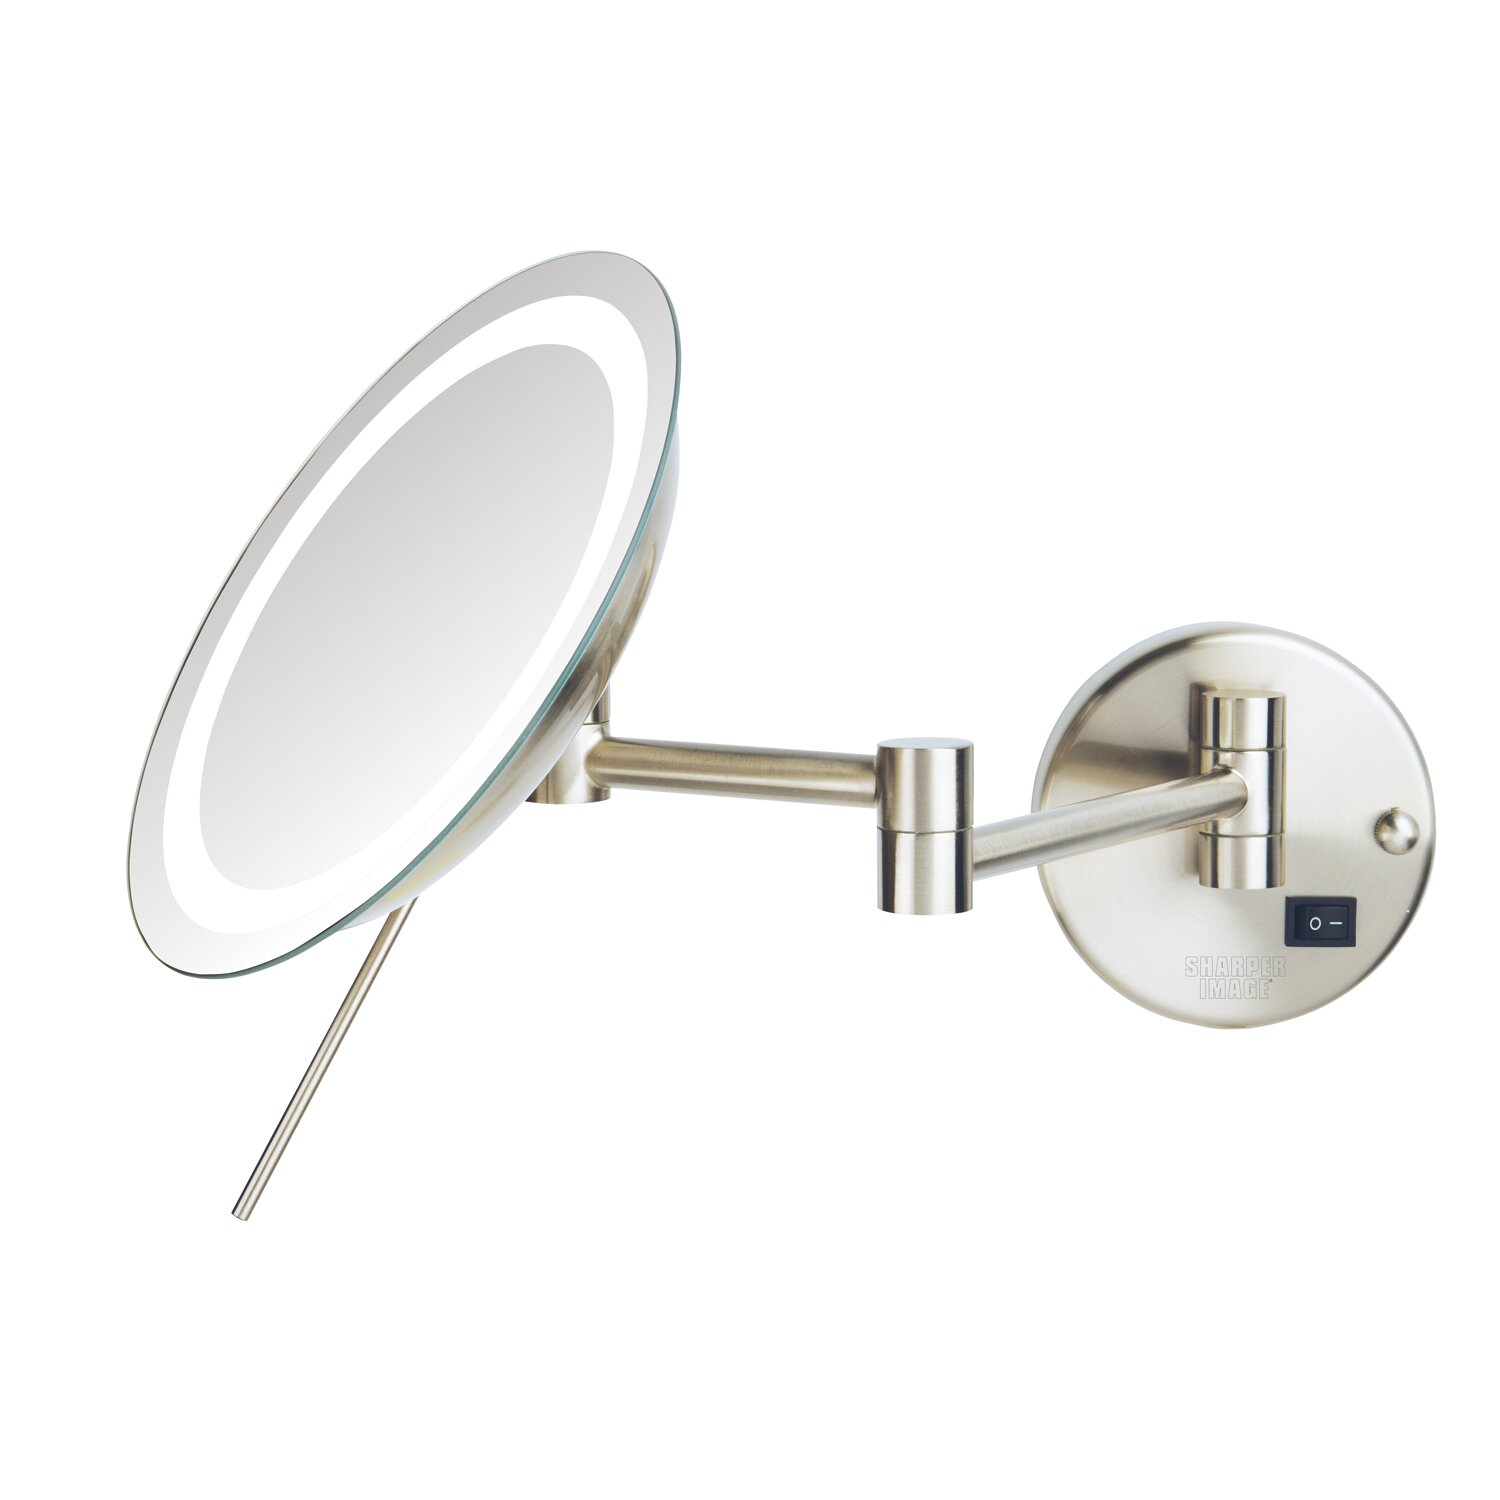 Wall mounted makeup mirror with lights - Jerdon Led 8x Magnifying Wall Mount Makeup Mirror